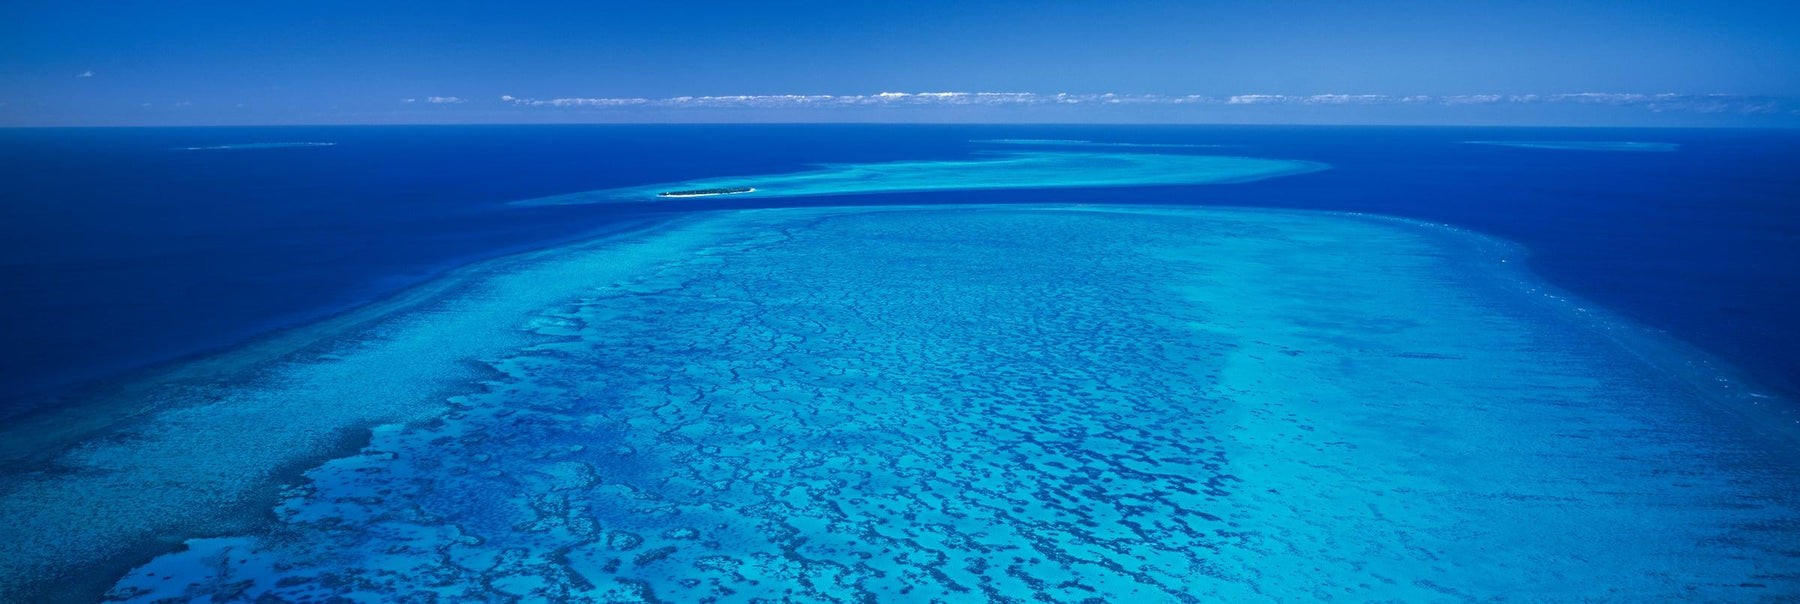 Aerial view of the Great Barrier Reef and ocean in Queensland Australia